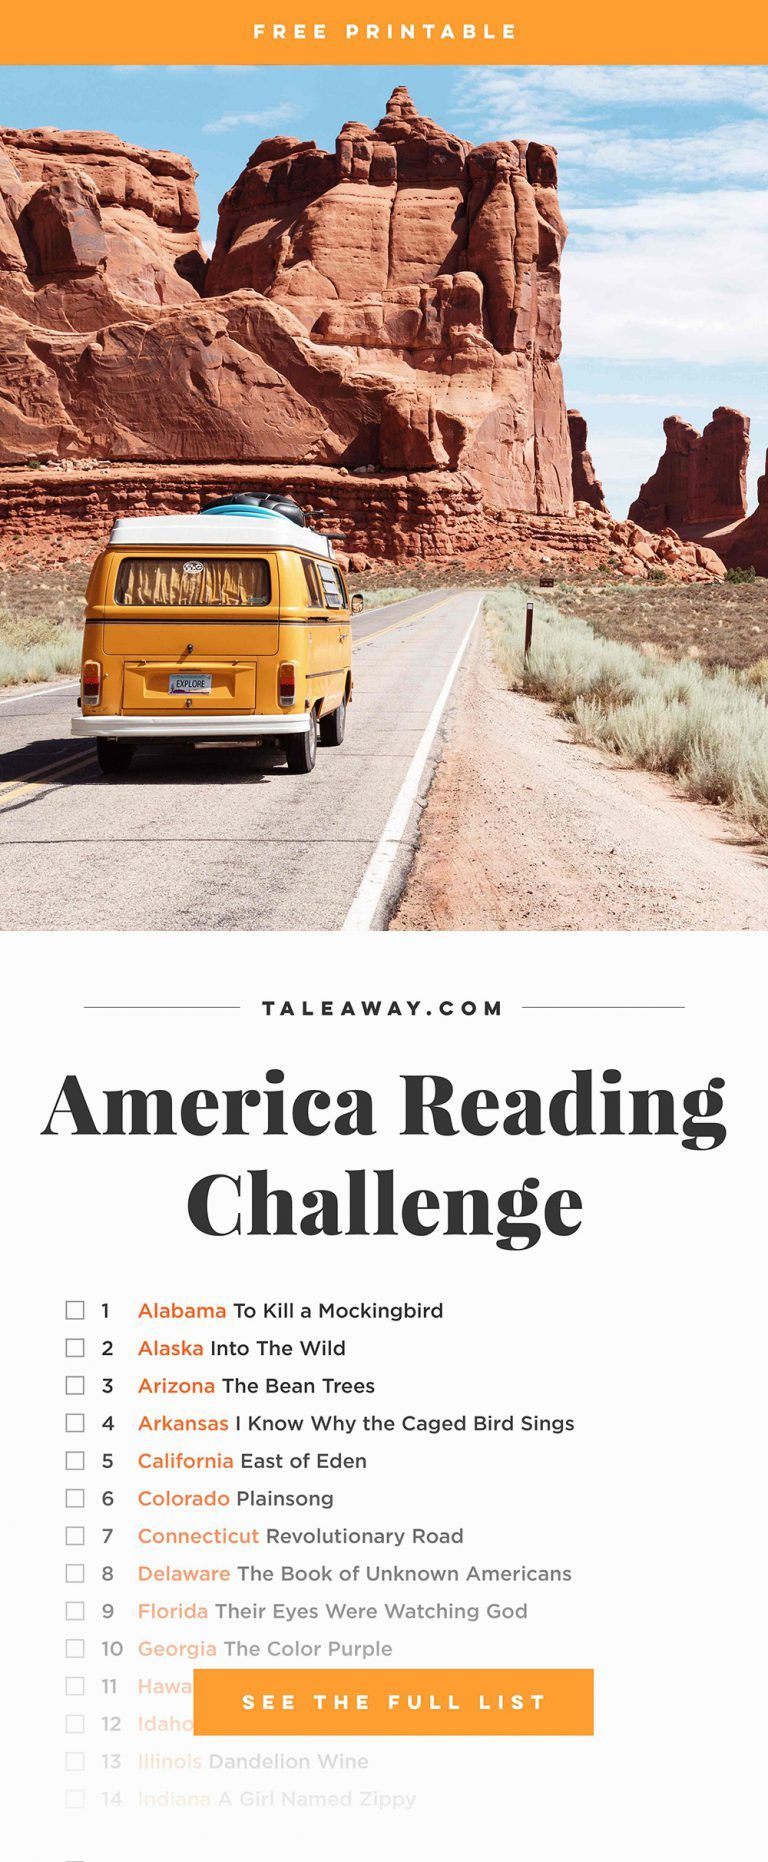 photograph about The Great American Read List Printable referred to as The usa Examining Issue: Publications Preset Within Every single Country ebook